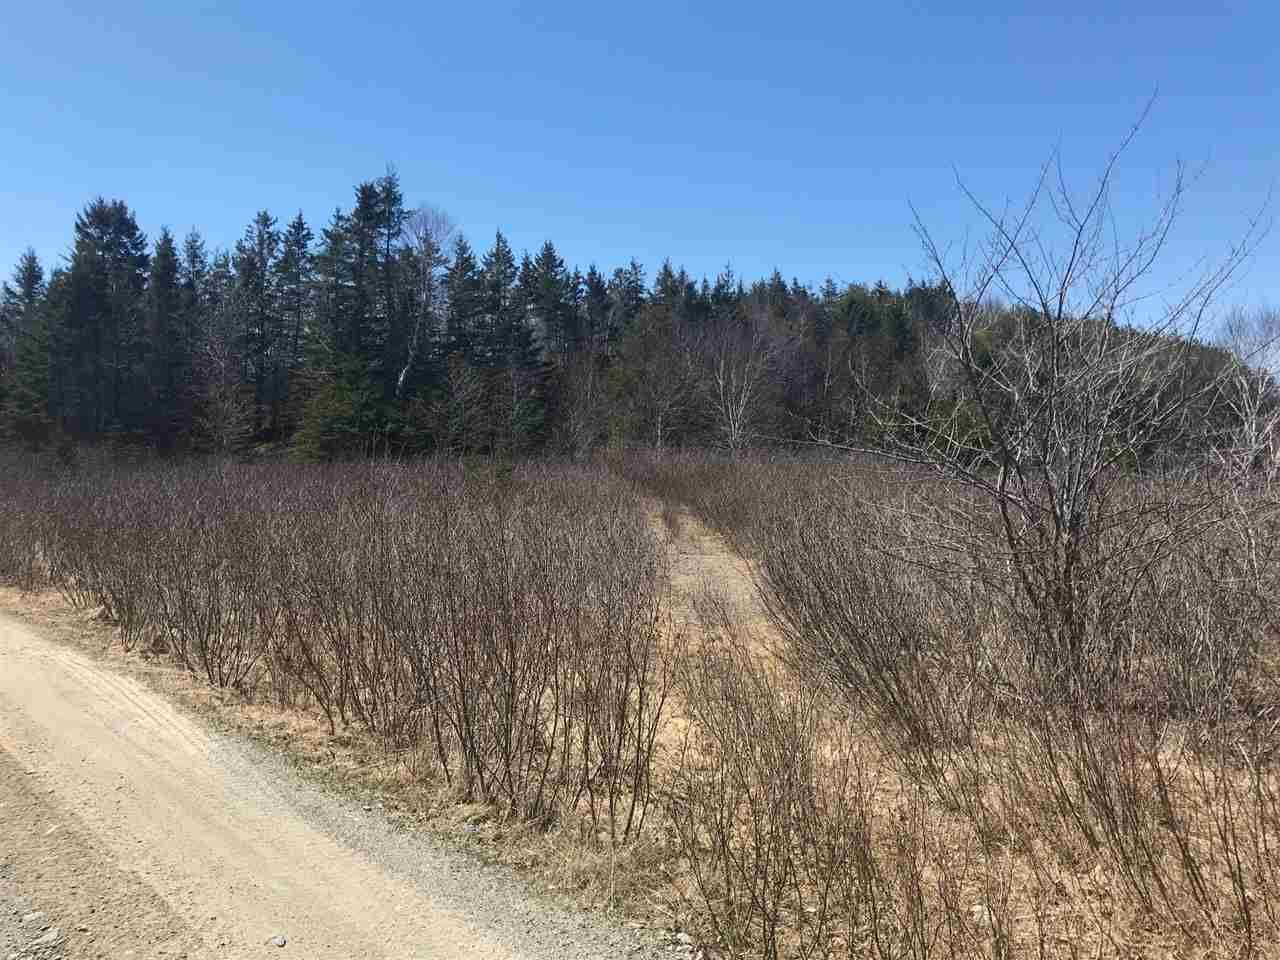 Photo 7: Photos: 11574 Highway 7 in Lake Charlotte: 35-Halifax County East Vacant Land for sale (Halifax-Dartmouth)  : MLS®# 201927372